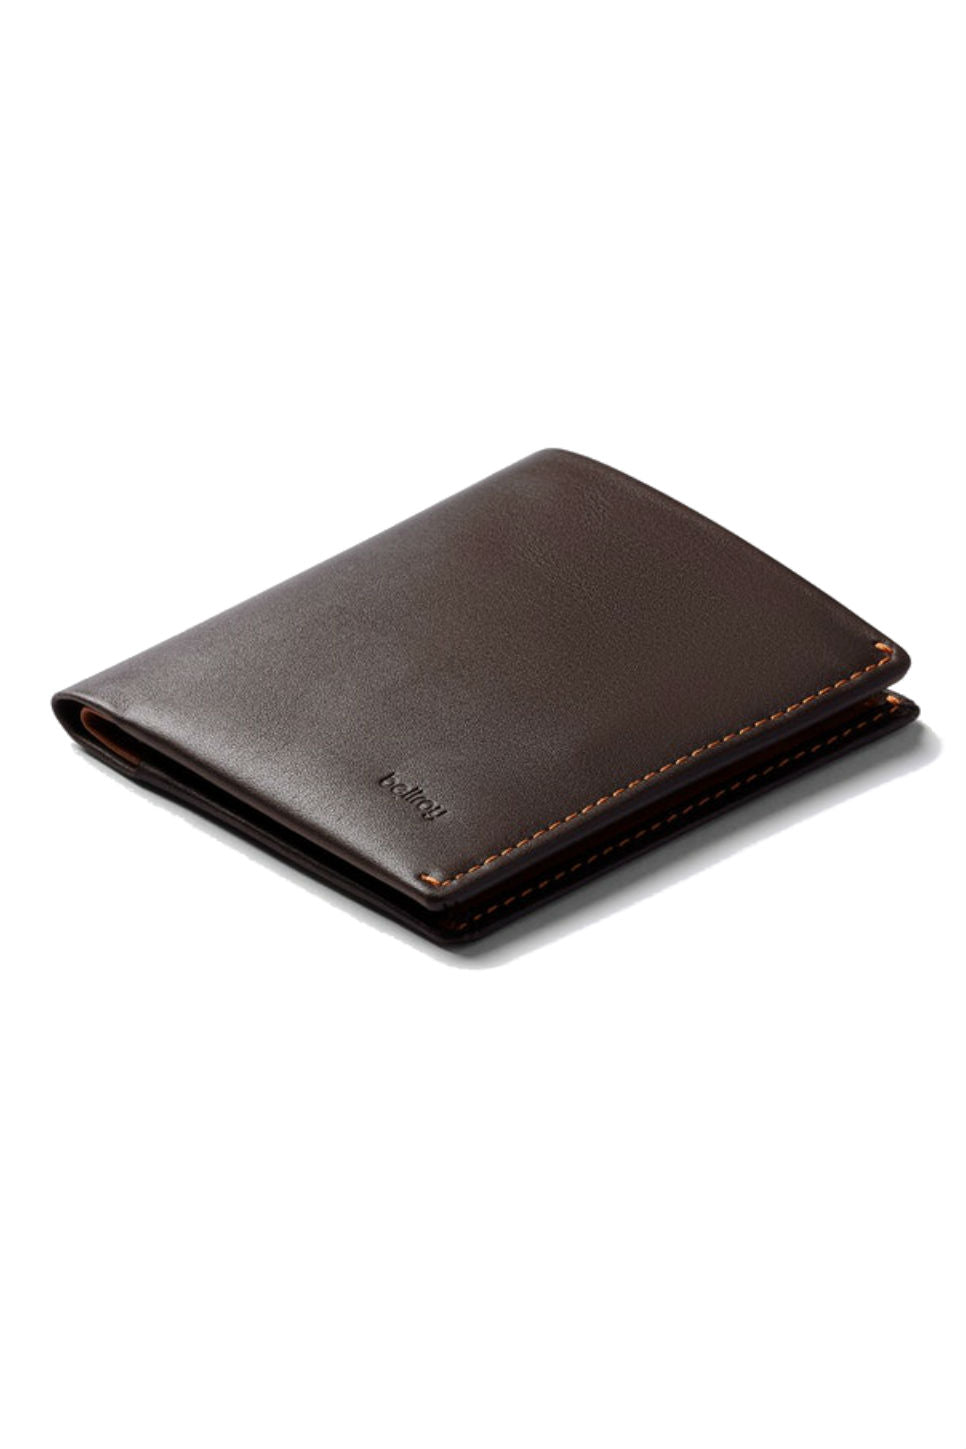 Bellroy - RFID Note Sleeve - Java